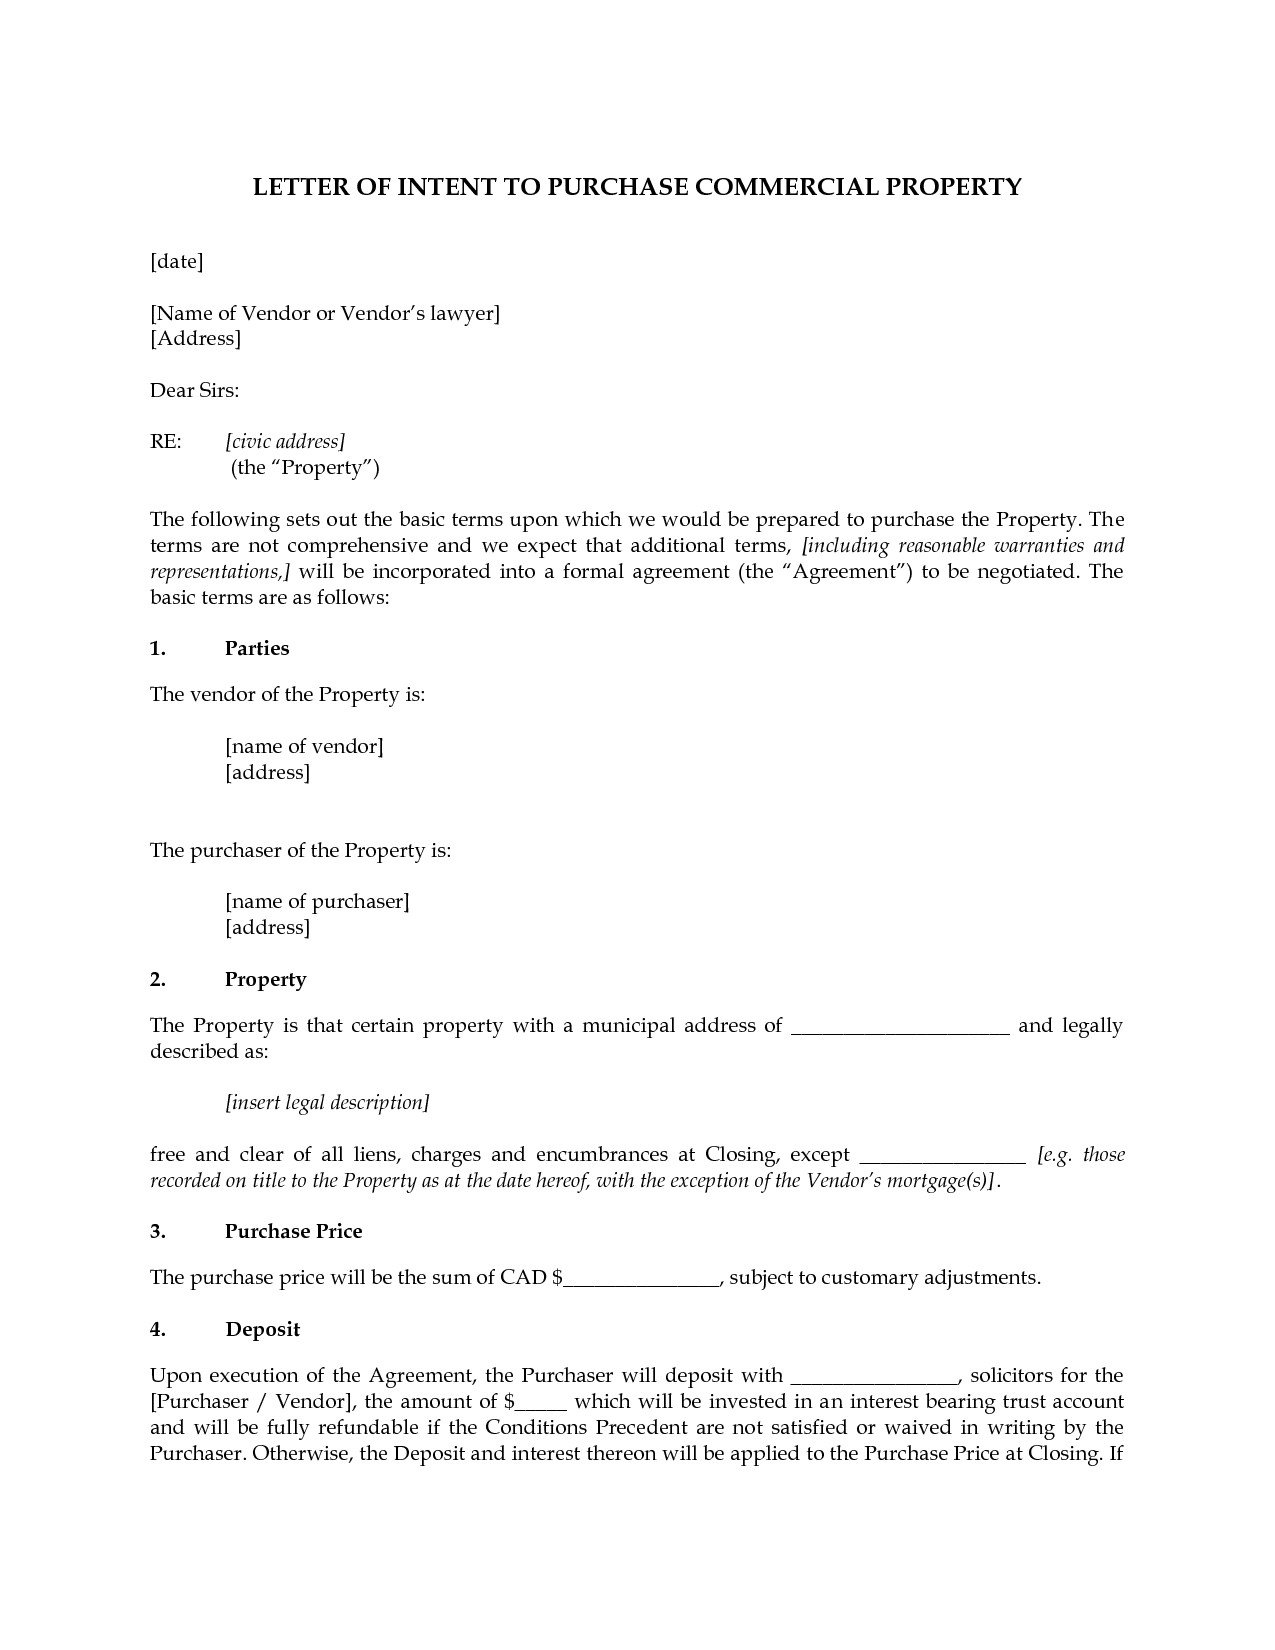 Letter Of Intent to Purchase Real Estate Template - Letter Intent for Real Estate Purchase Template